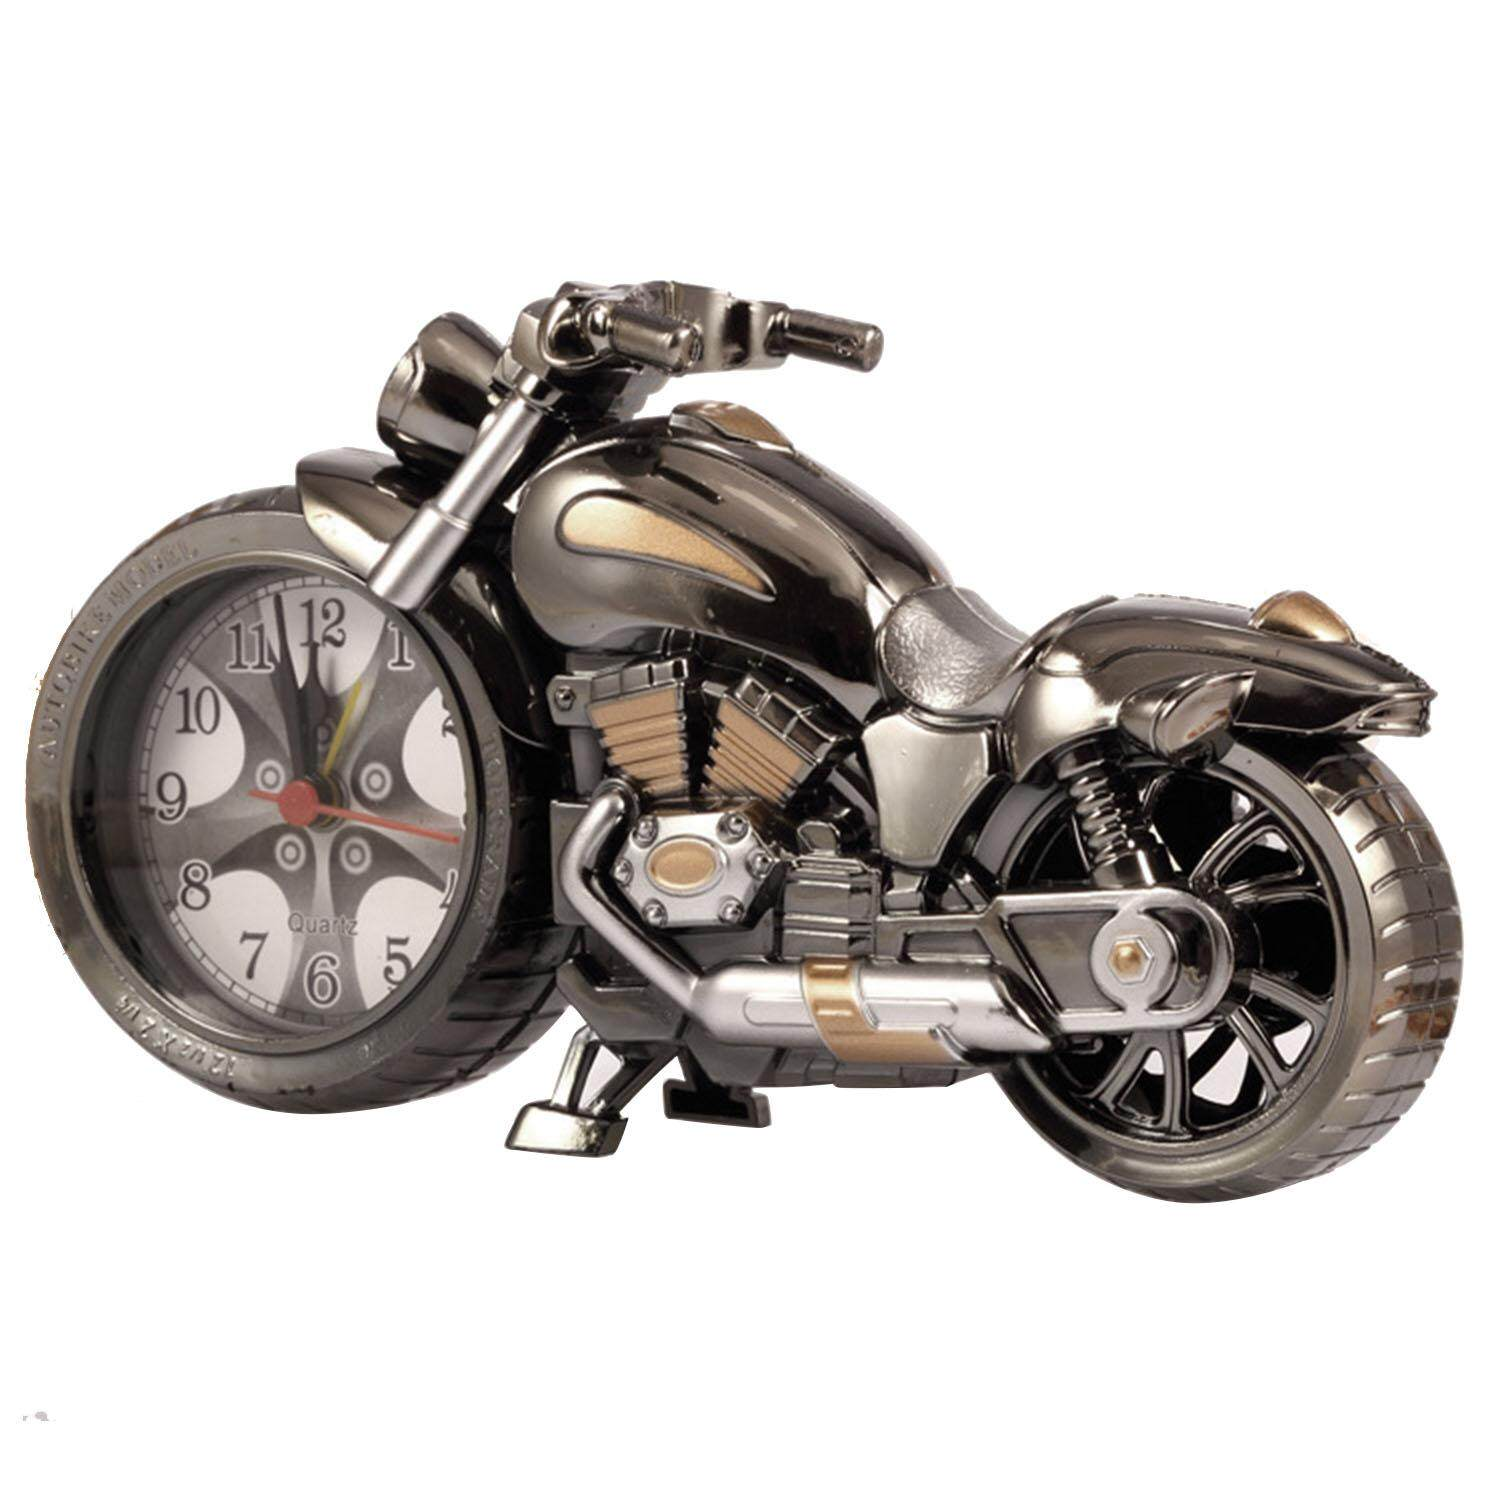 Vintage Retro Motorcycle Style Students Alarm Clock Table Desk Time Clock Cool Motorbike Model Home Office Shelf Decoration By Duha.